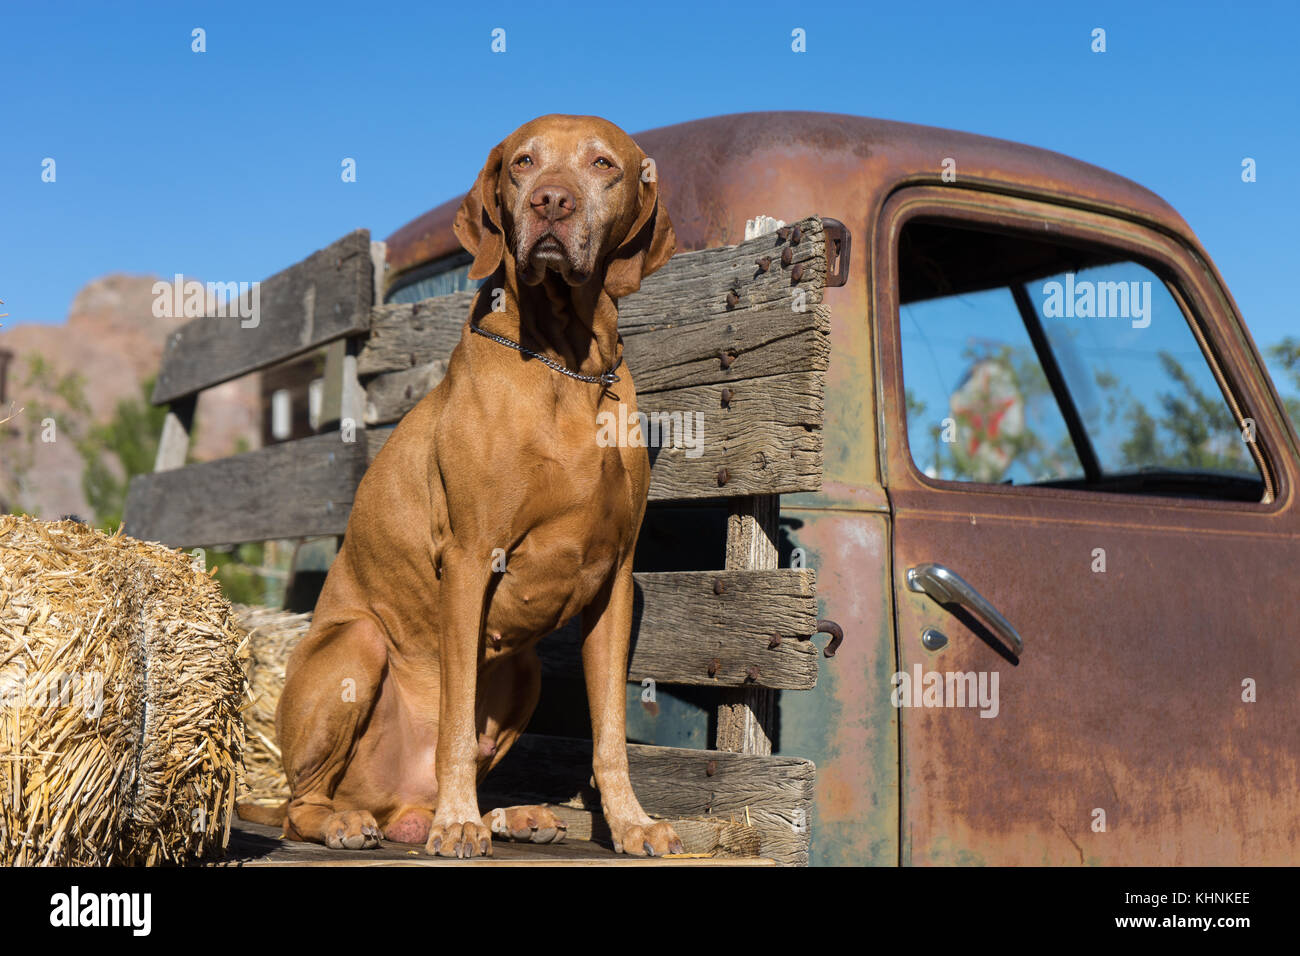 vizsla dog sitting on vintage truck - Stock Image